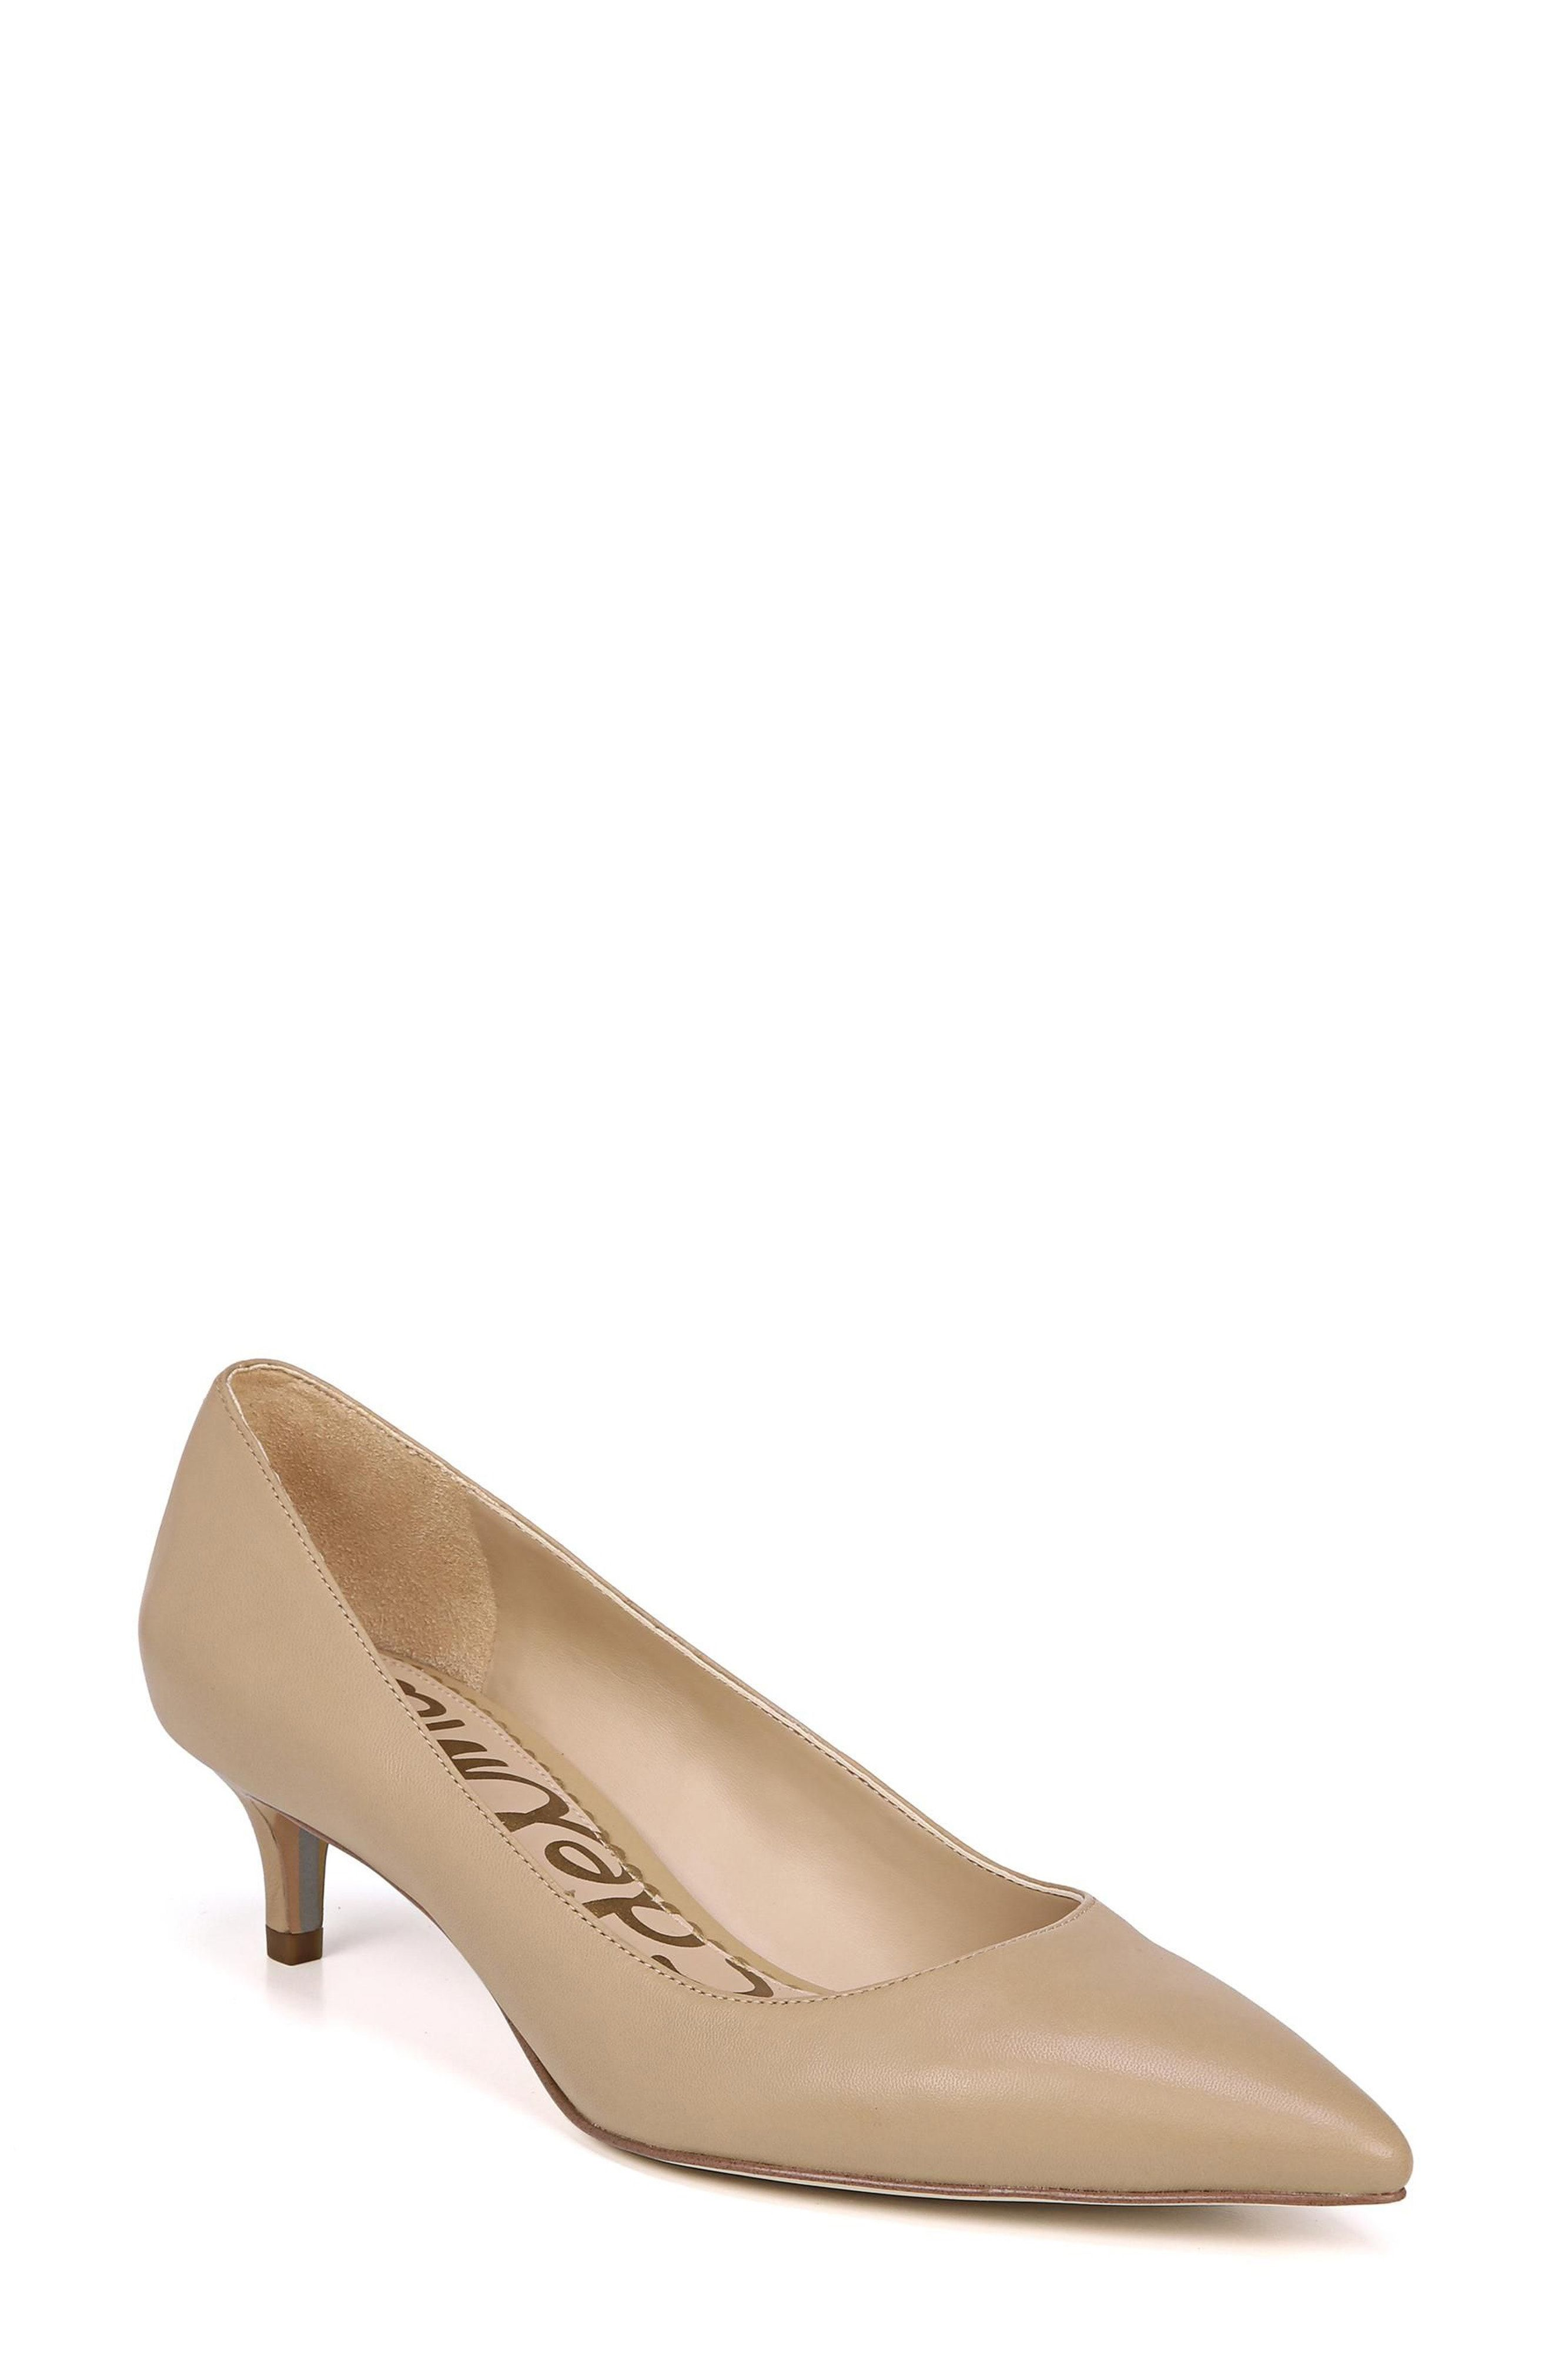 d340f2bd317 Sam Edelman Dori Pump available at  Nordstrom